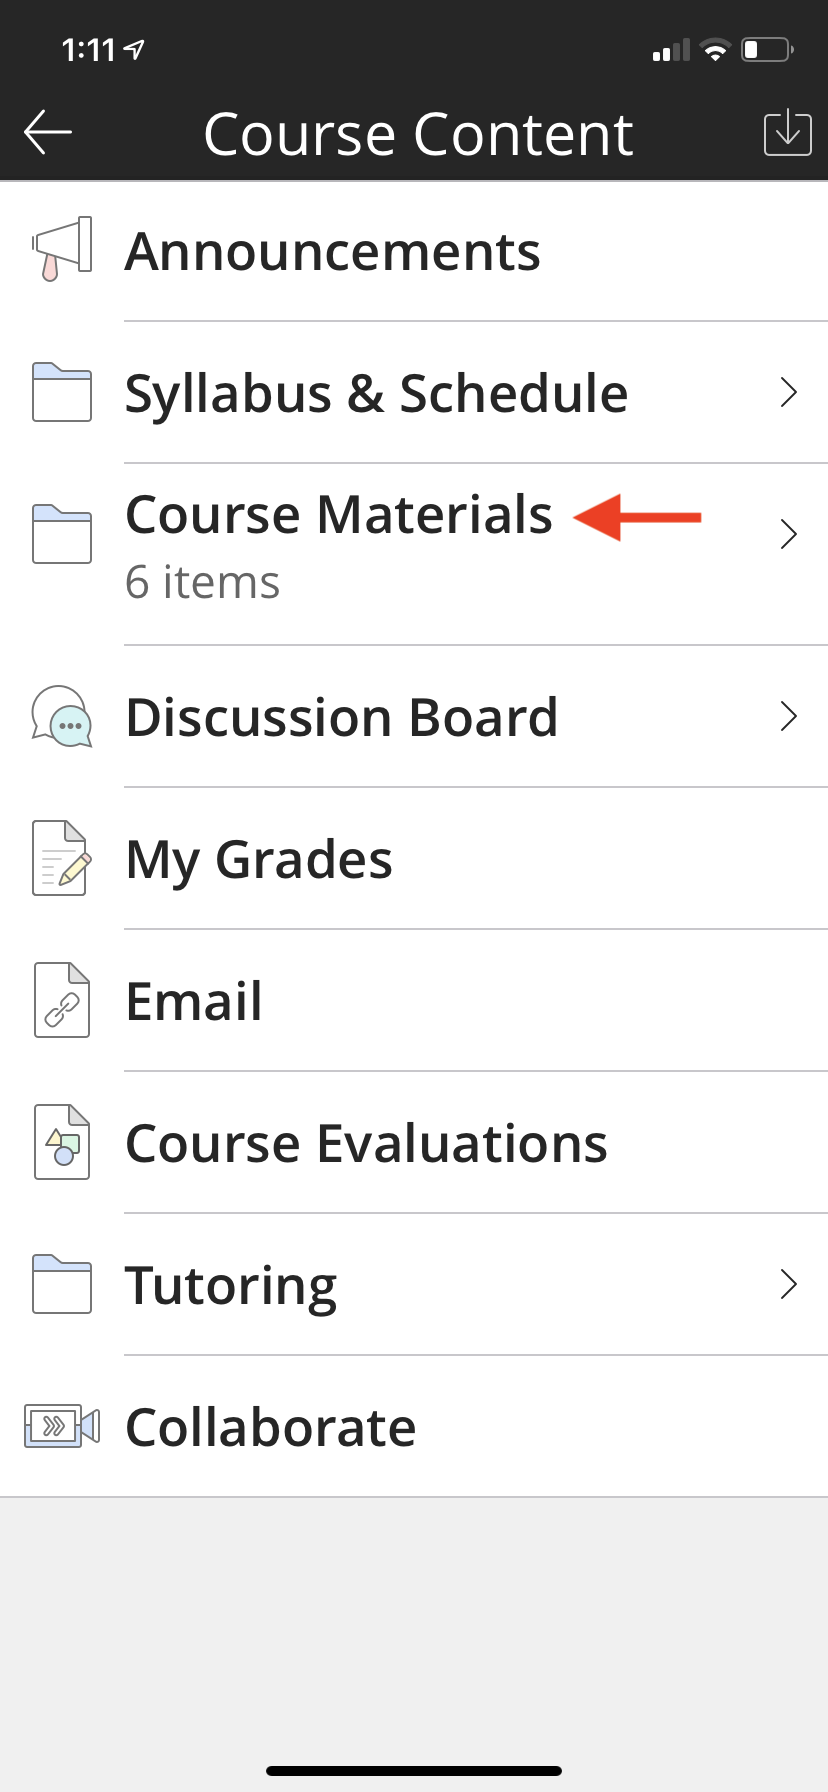 This is the course menu for the course selected highlighting the Course Materials link on the menu.